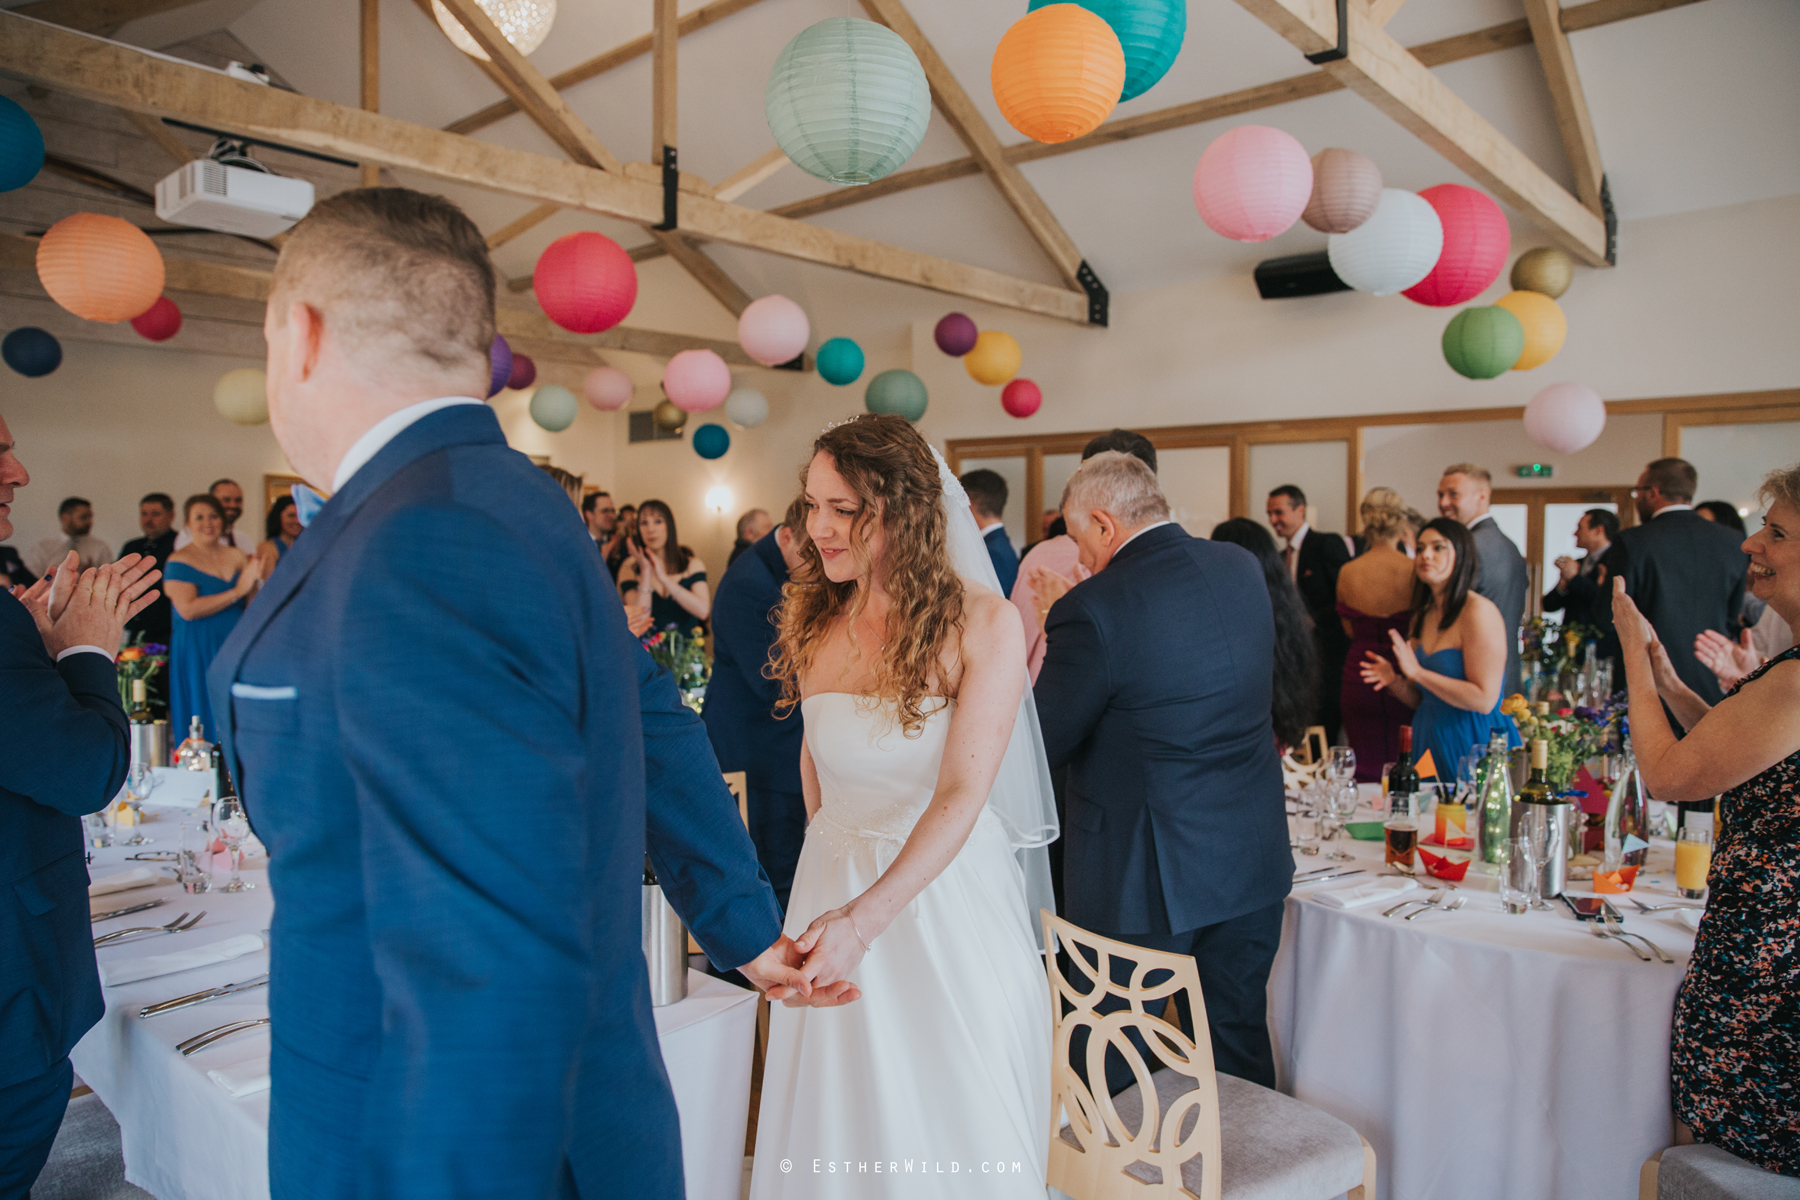 The_BoatHouse_Wedding_Venue_Ormesby_Norfolk_Broads_Boat_Wedding_Photography_Esther_Wild_Photographer_IMG_2158.jpg